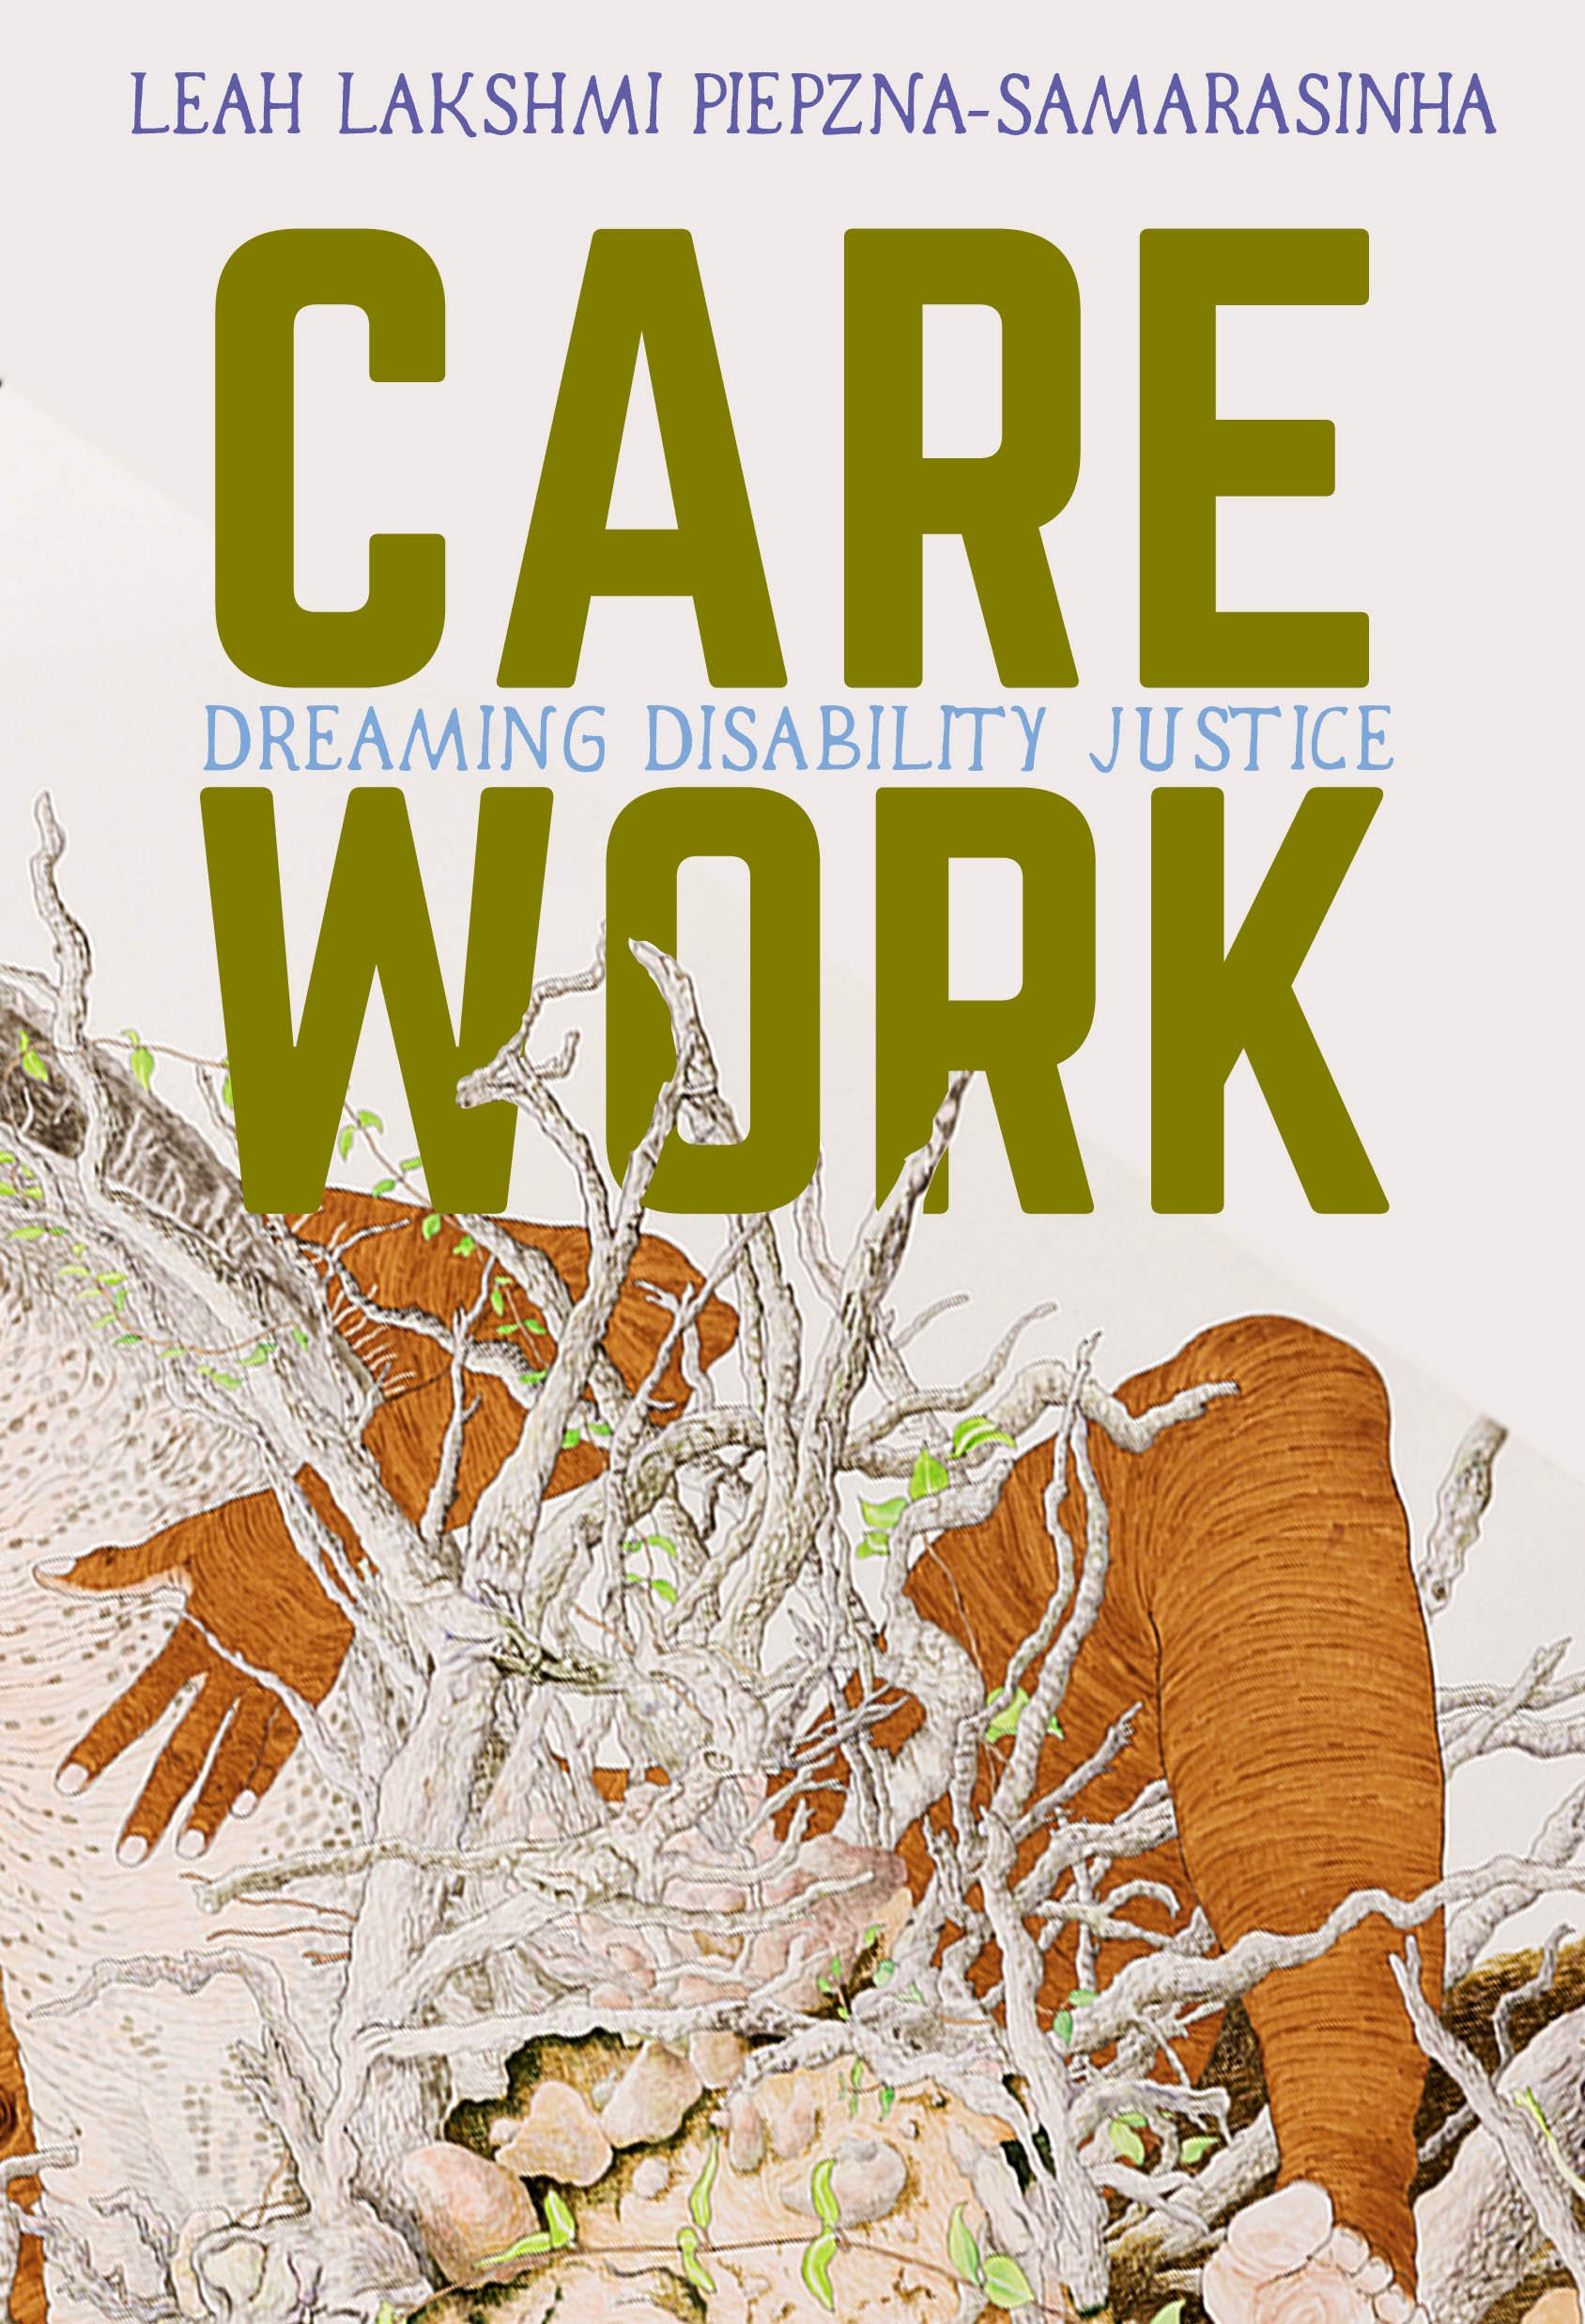 Book cover: Title text 'Care Work' in large brown text all in caps, author name at top. Illustratio below shows hand and brown of person of colour wrapped around tree trunk, from which twigs and small green leaves grow